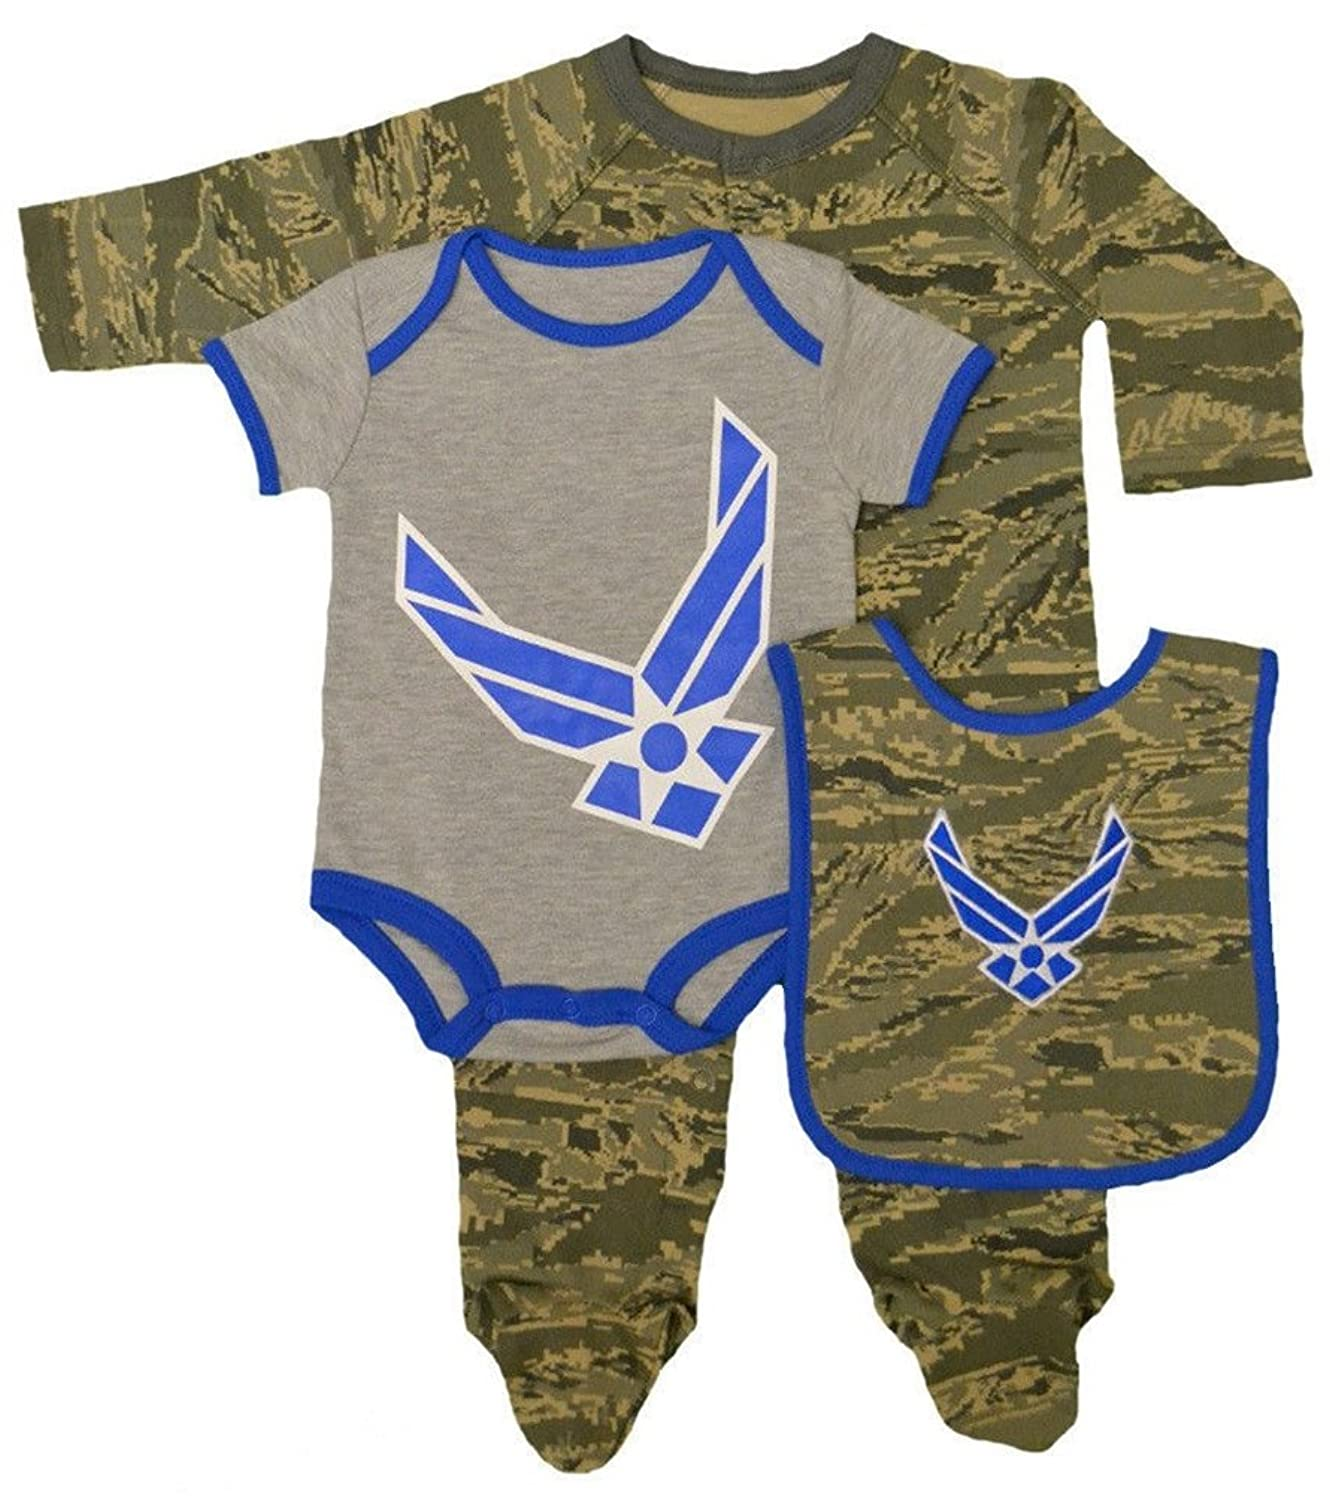 Amazon Baby Infant Toddler 3pc Abu Air Force Bib Outfit